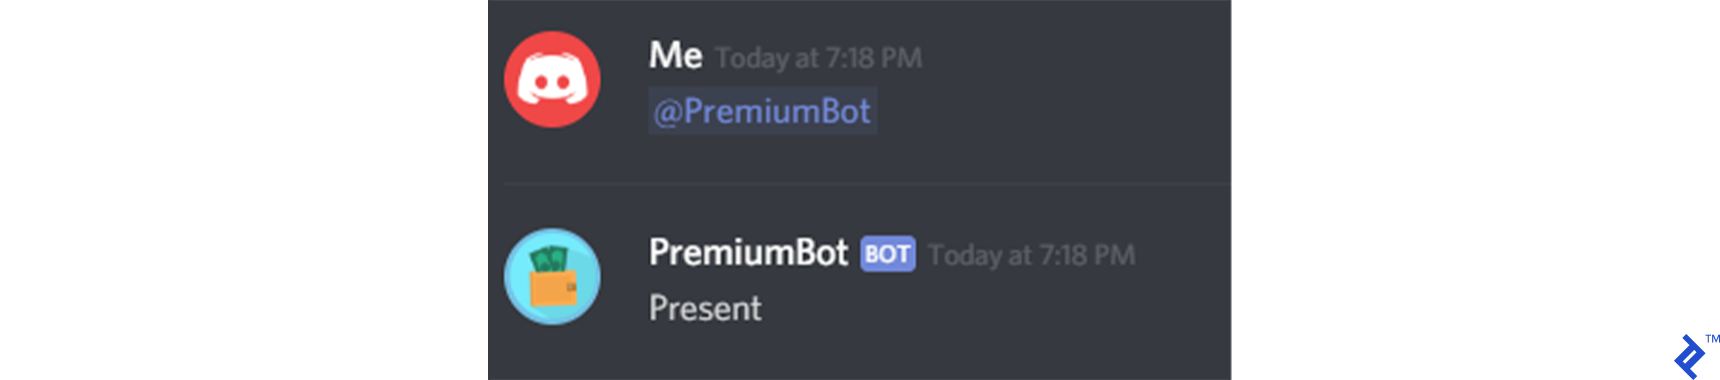 Your bot is present